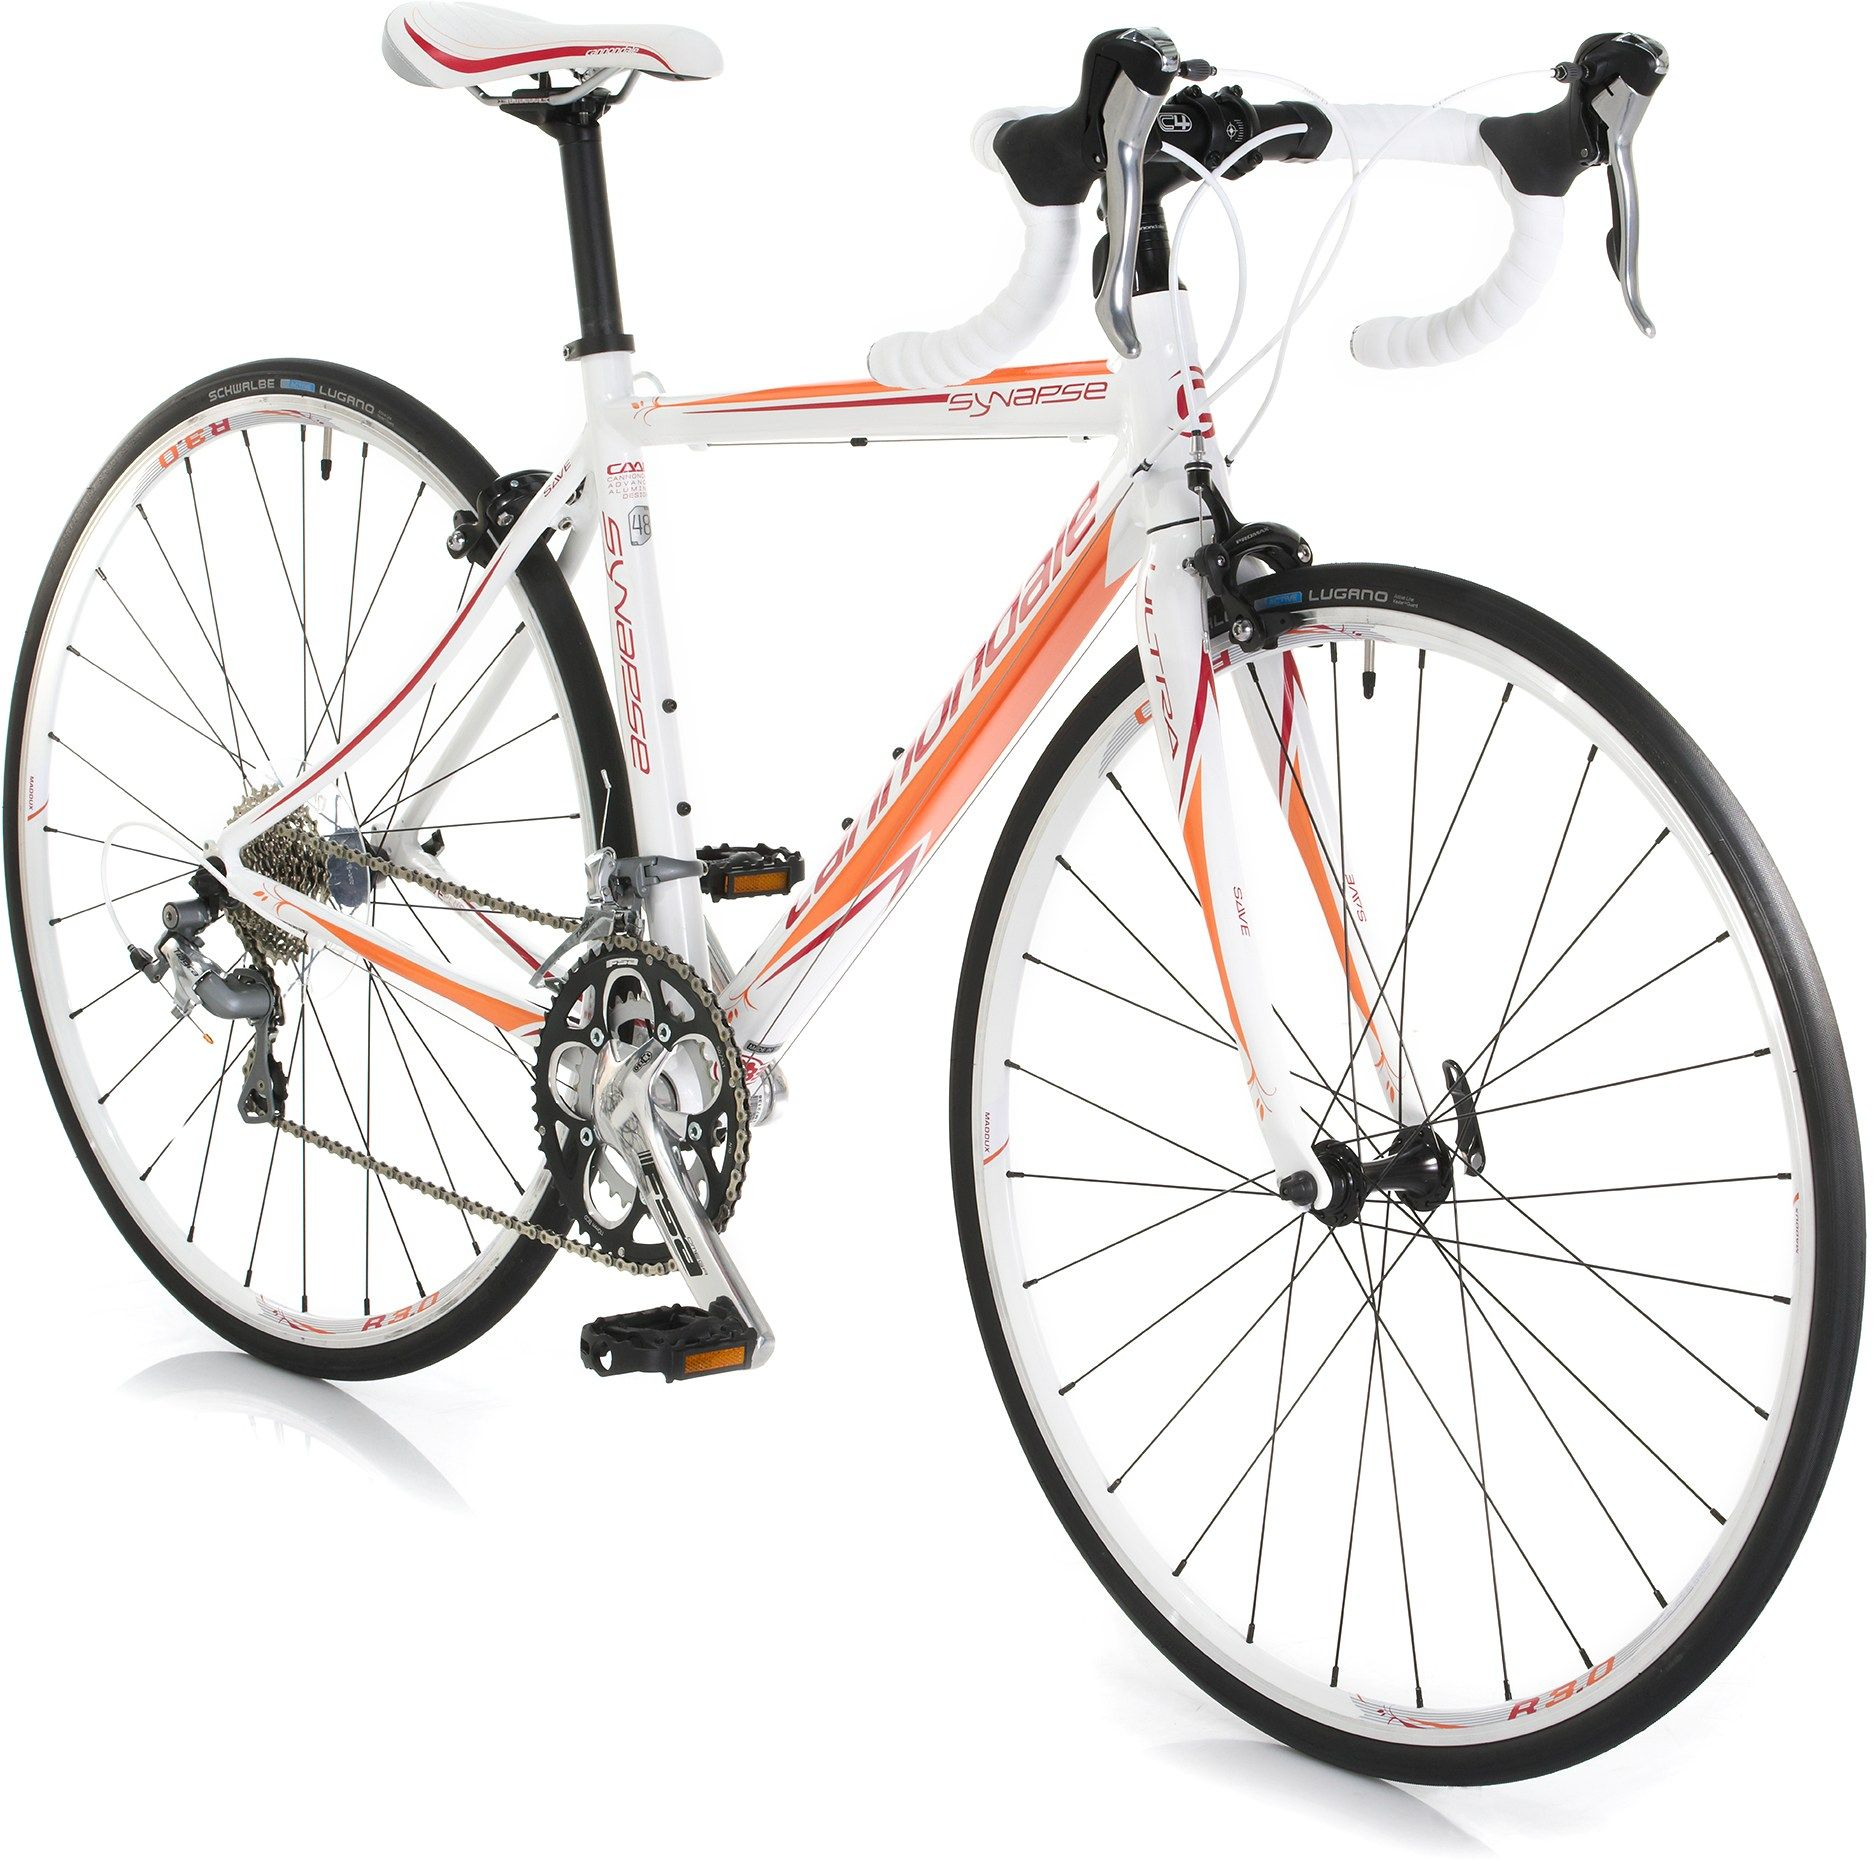 dc321265909 Made for Women & Made to Win — 2013 Cannondale Synapse Alloy 6 Compact Women's  Bike. #REIswimbikerun